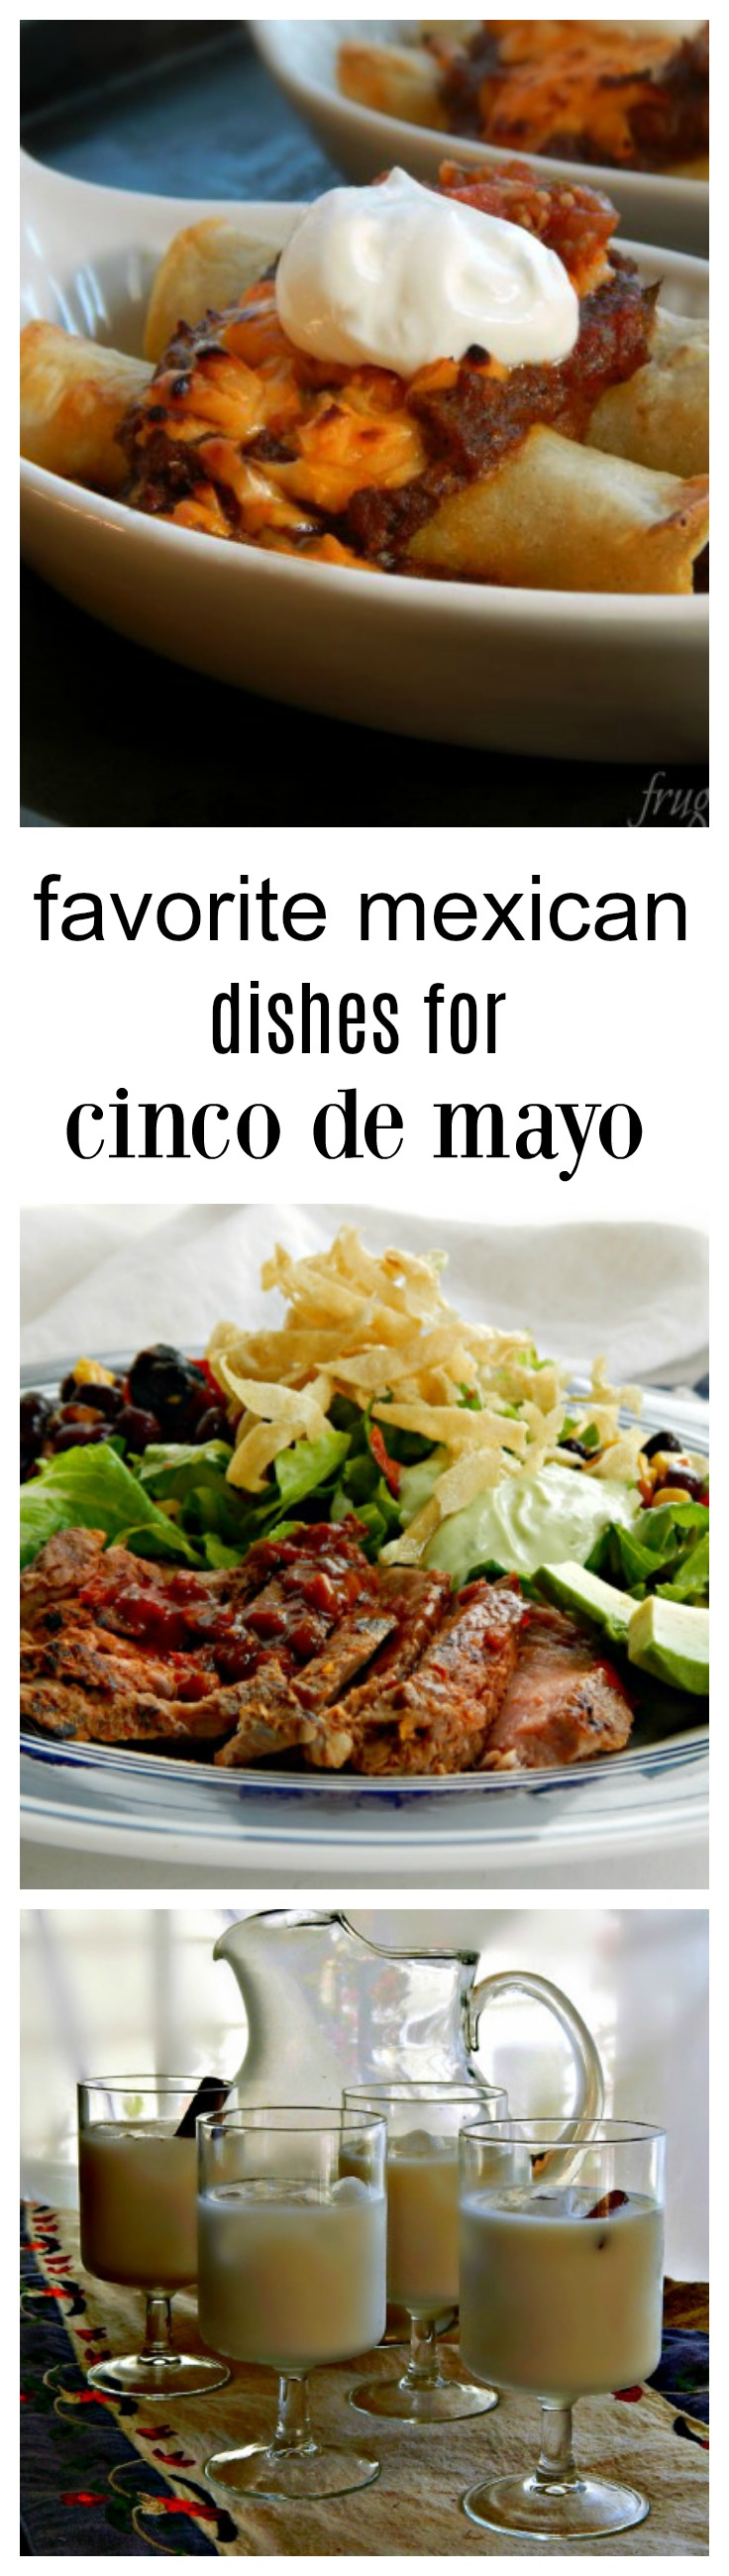 Collection of favorite recipes for Cinco de Mayo or anytime! Classic Mexican, Southwestern, Tex Mex and Mexican American! Over 100 recipes. #RecipesCincoDeMayo #MexicanRecipes